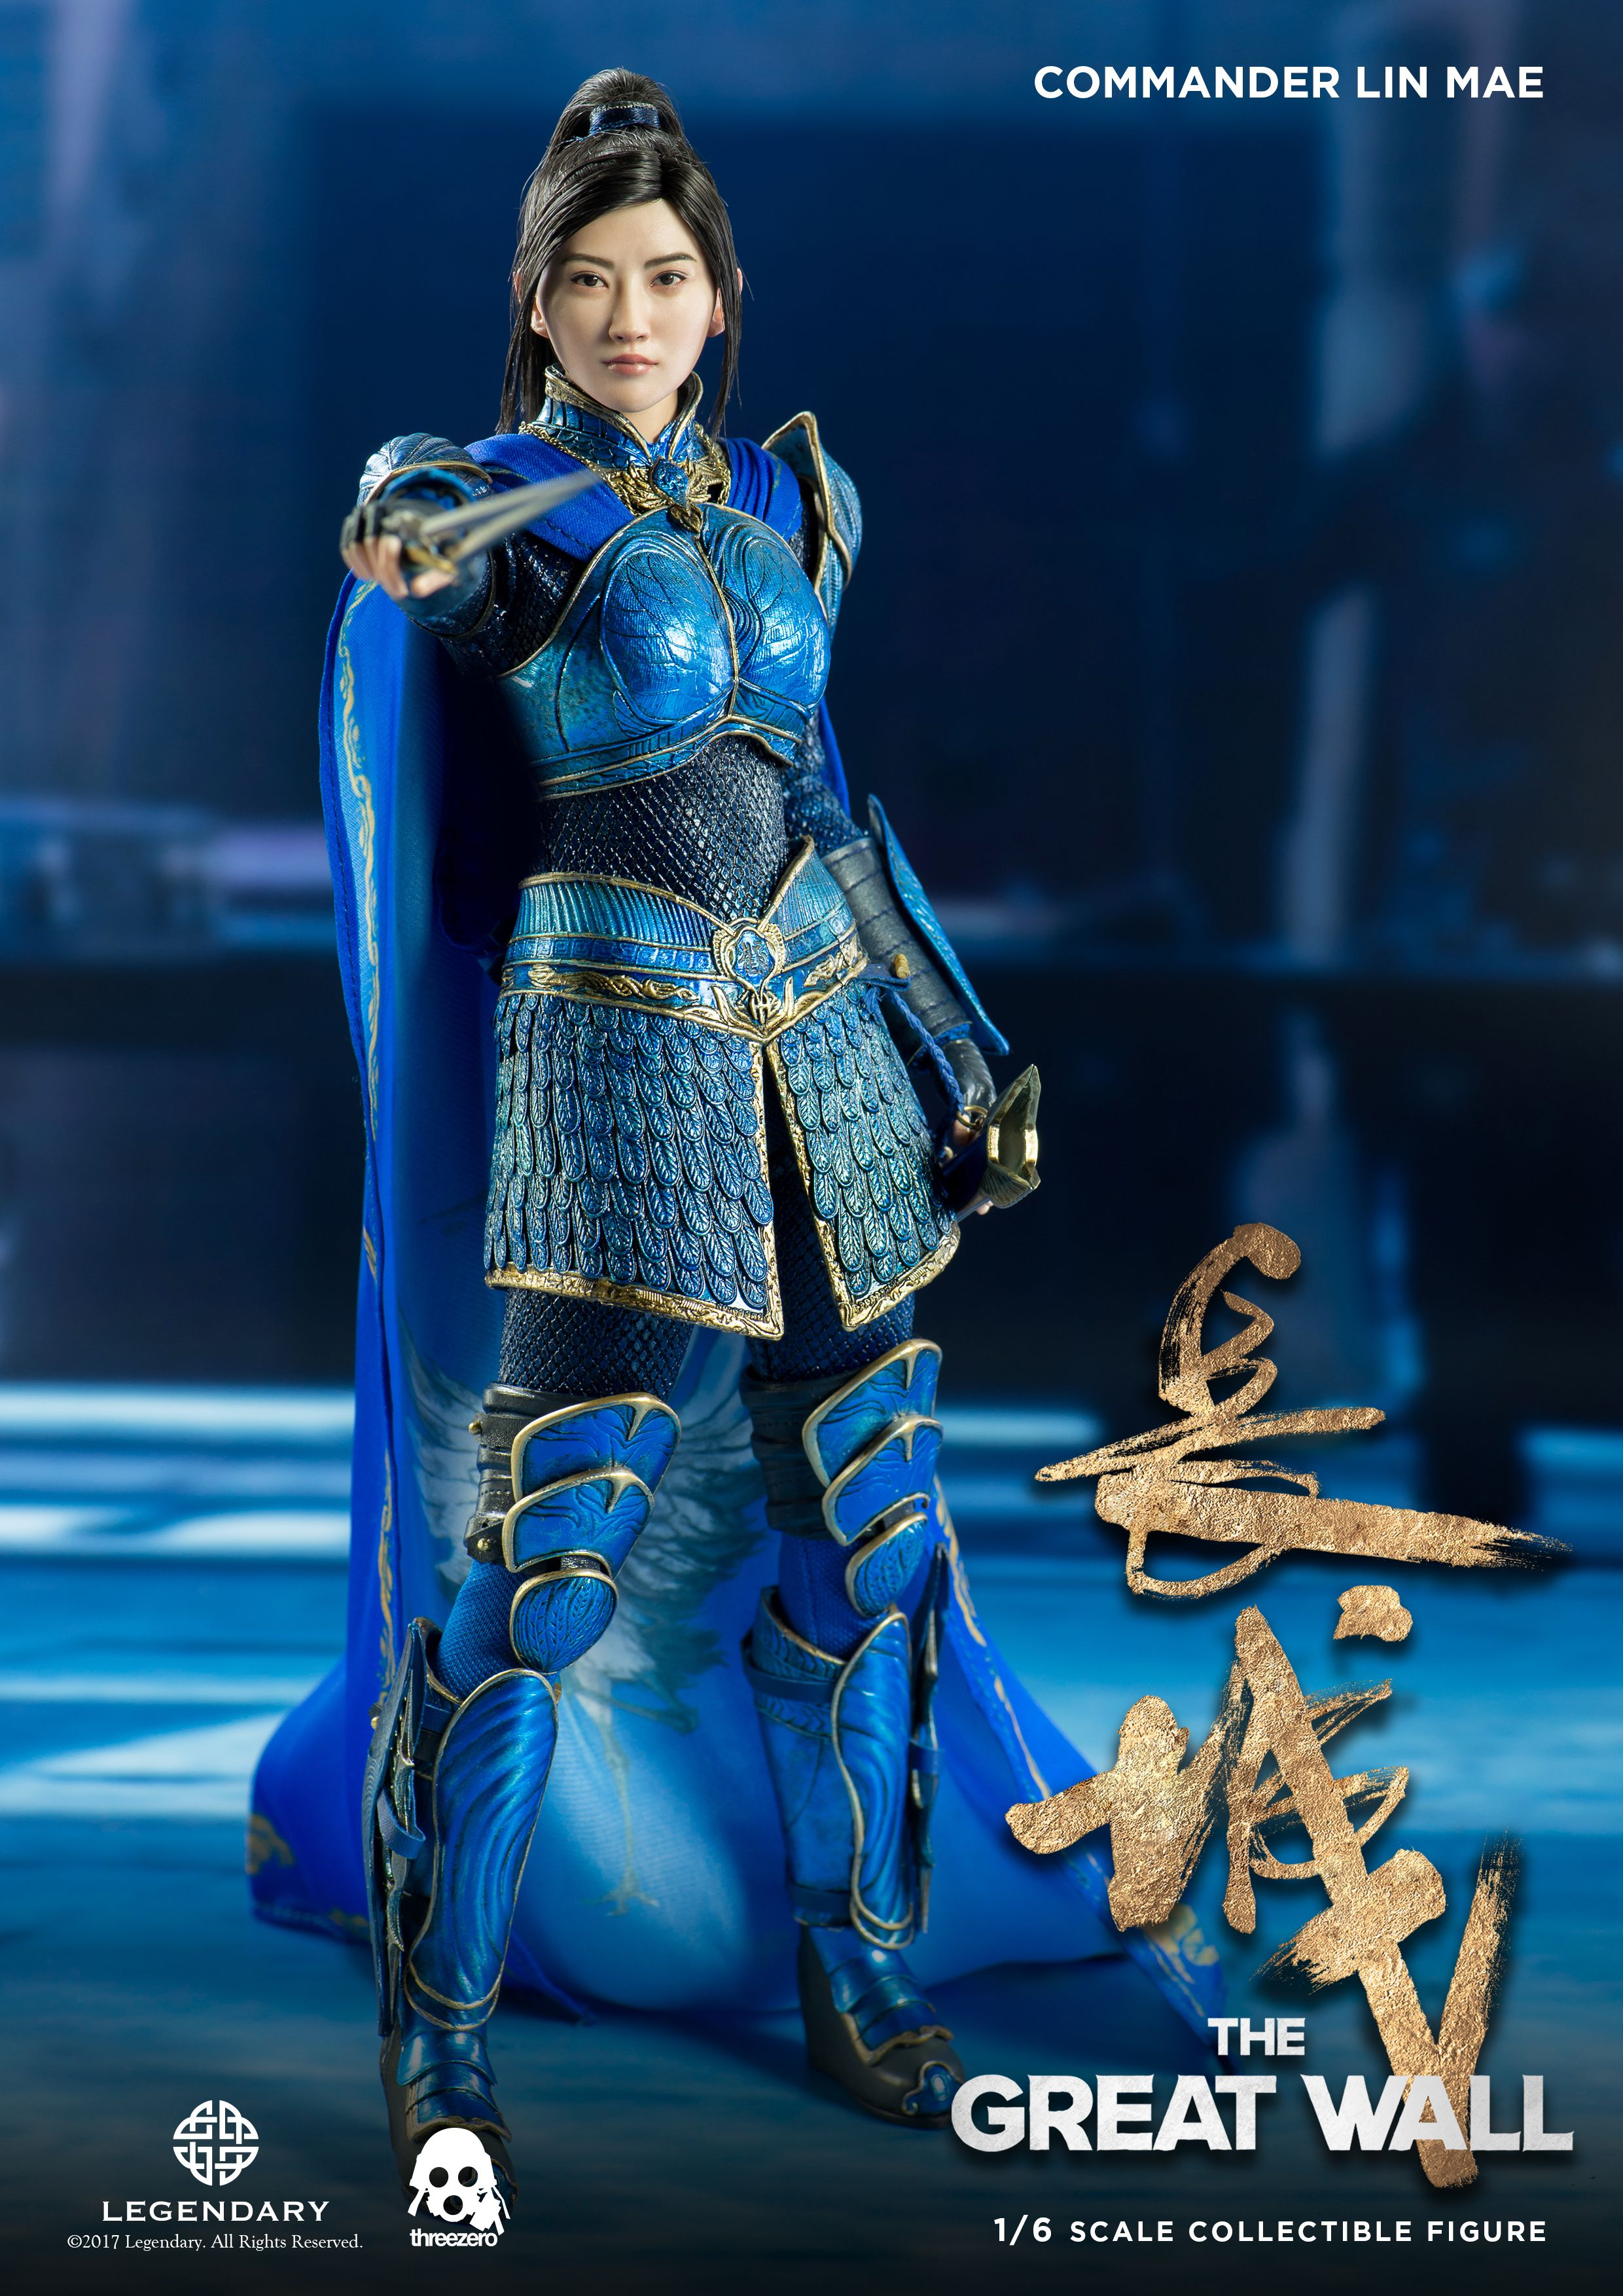 1 6 Scale The Great Wall Commander Lin Mae Collectible Pre Order